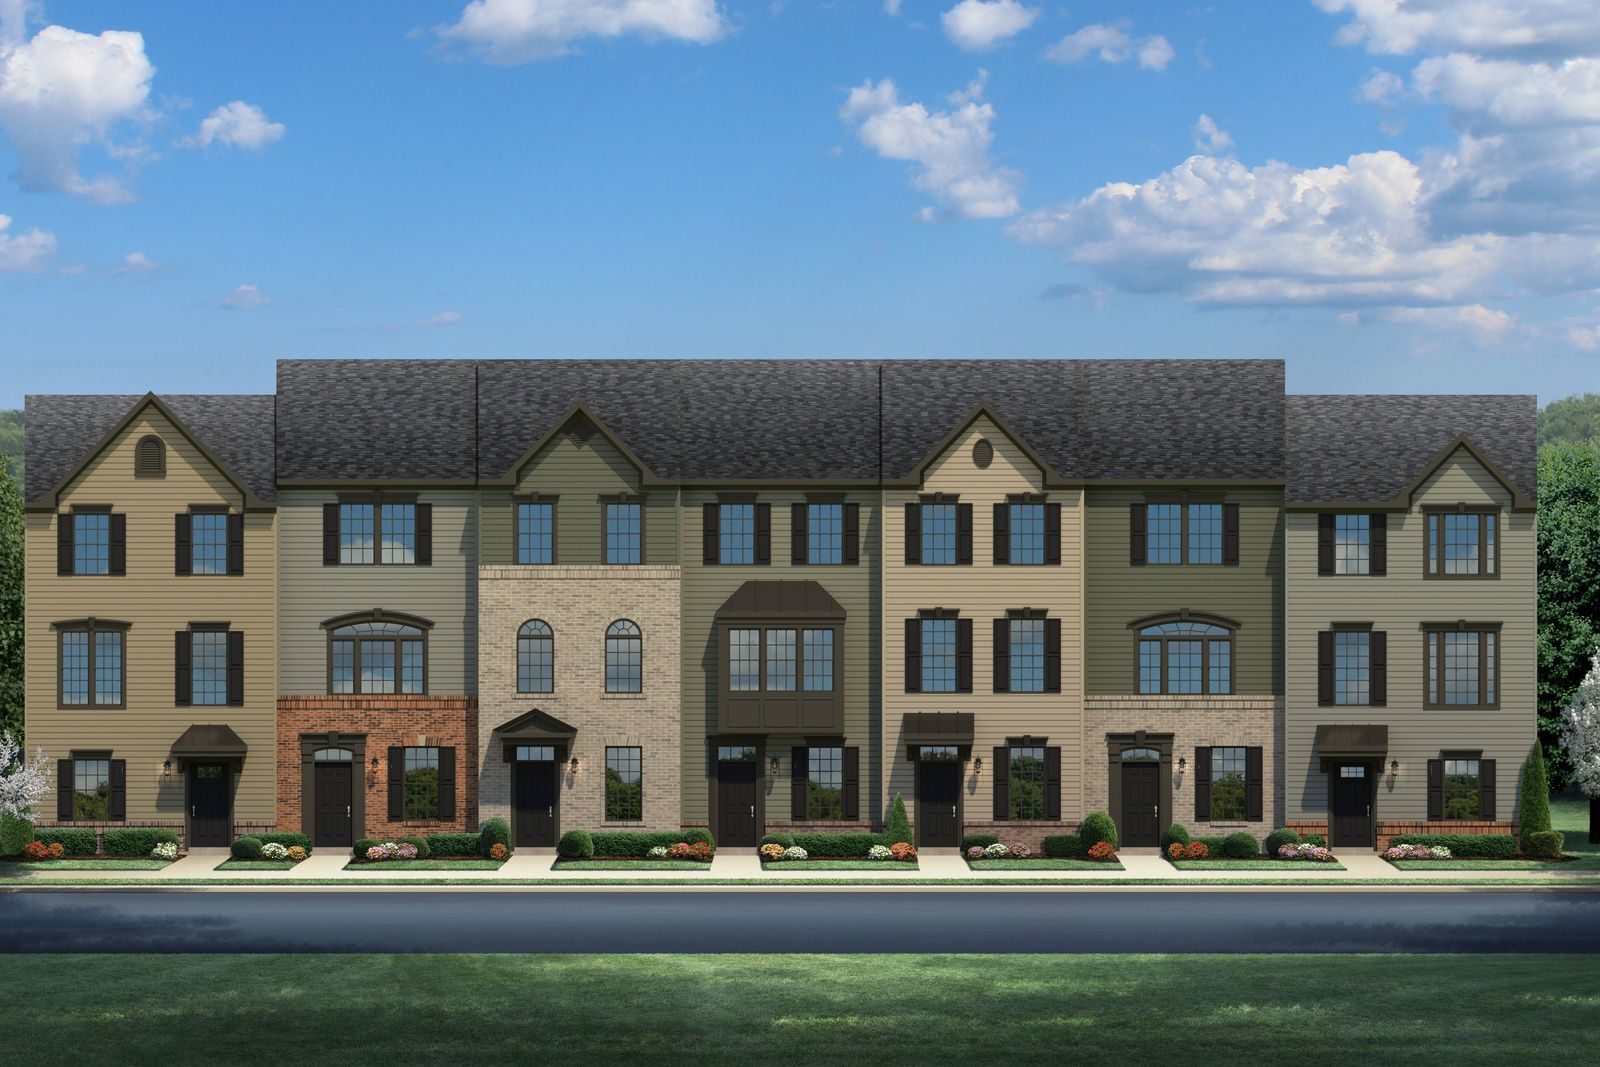 FOSTER'S GLEN - BRAND NEW URBAN TOWNHOMES COMING SOON TO FAIRFAX COUNTY!:New garage townhomes for the best value in Fairfax County! Off Rte. 28 near Dulles Airport, the Metro, Herndon & Reston! Pricing starts in themid $500s -Become a VIP Today!